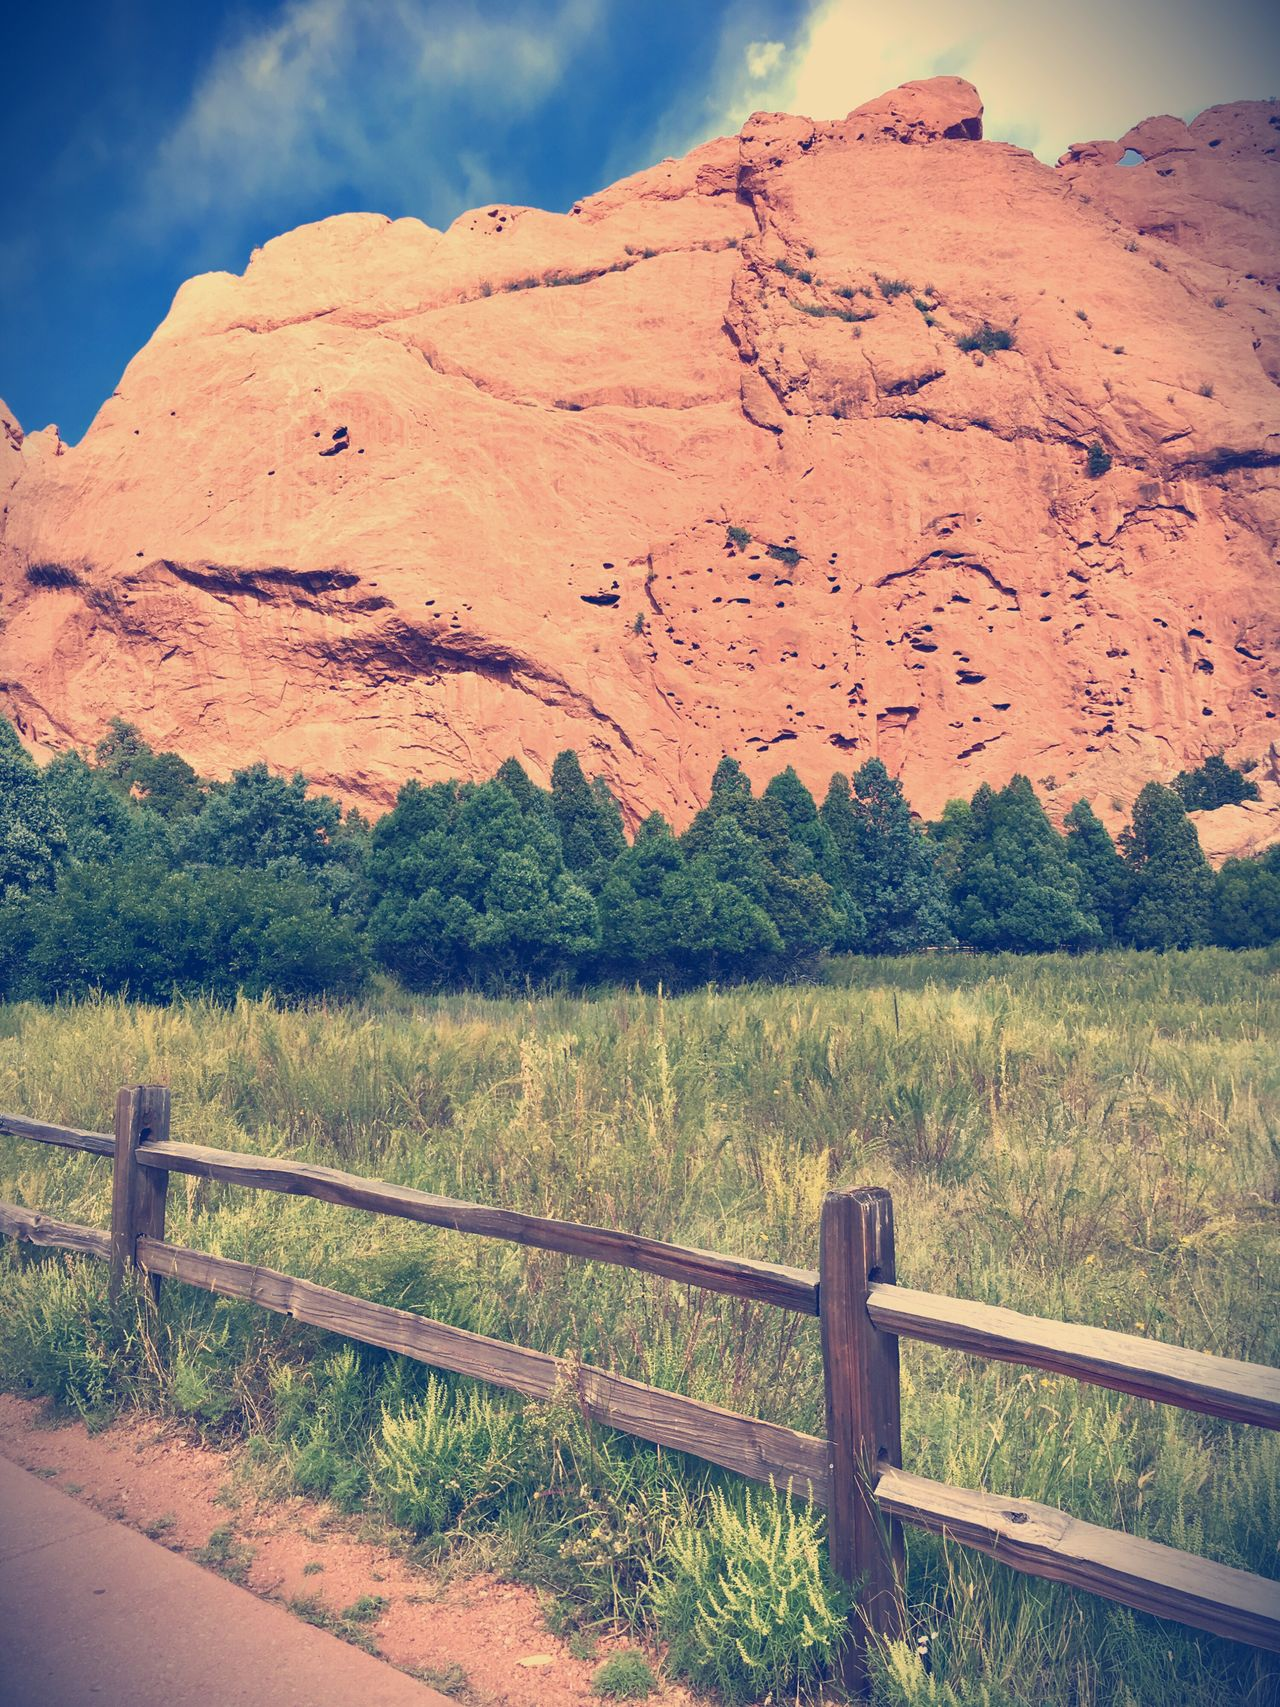 Nature Sky Outdoors Grass Landscape No People Day Beauty In Nature Tranquil Scene Scenics Tranquility Mountain Tree Colorado Colorado Photography Gardenofthegods Colorado Springs